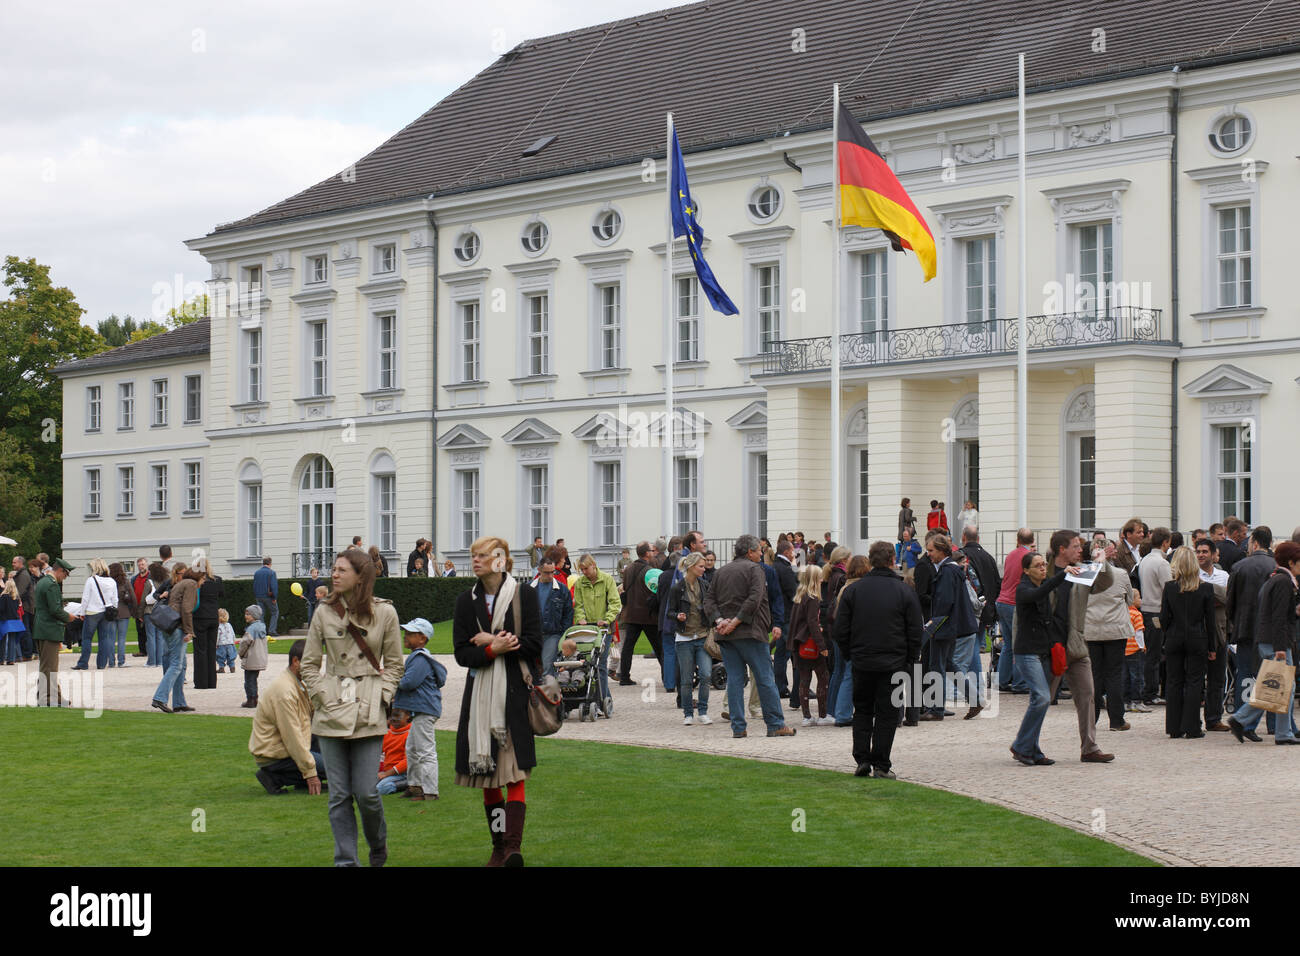 The Open Door Day in the Office of the Federal President and Schloss Bellevue, Berlin, Germany - Stock Image